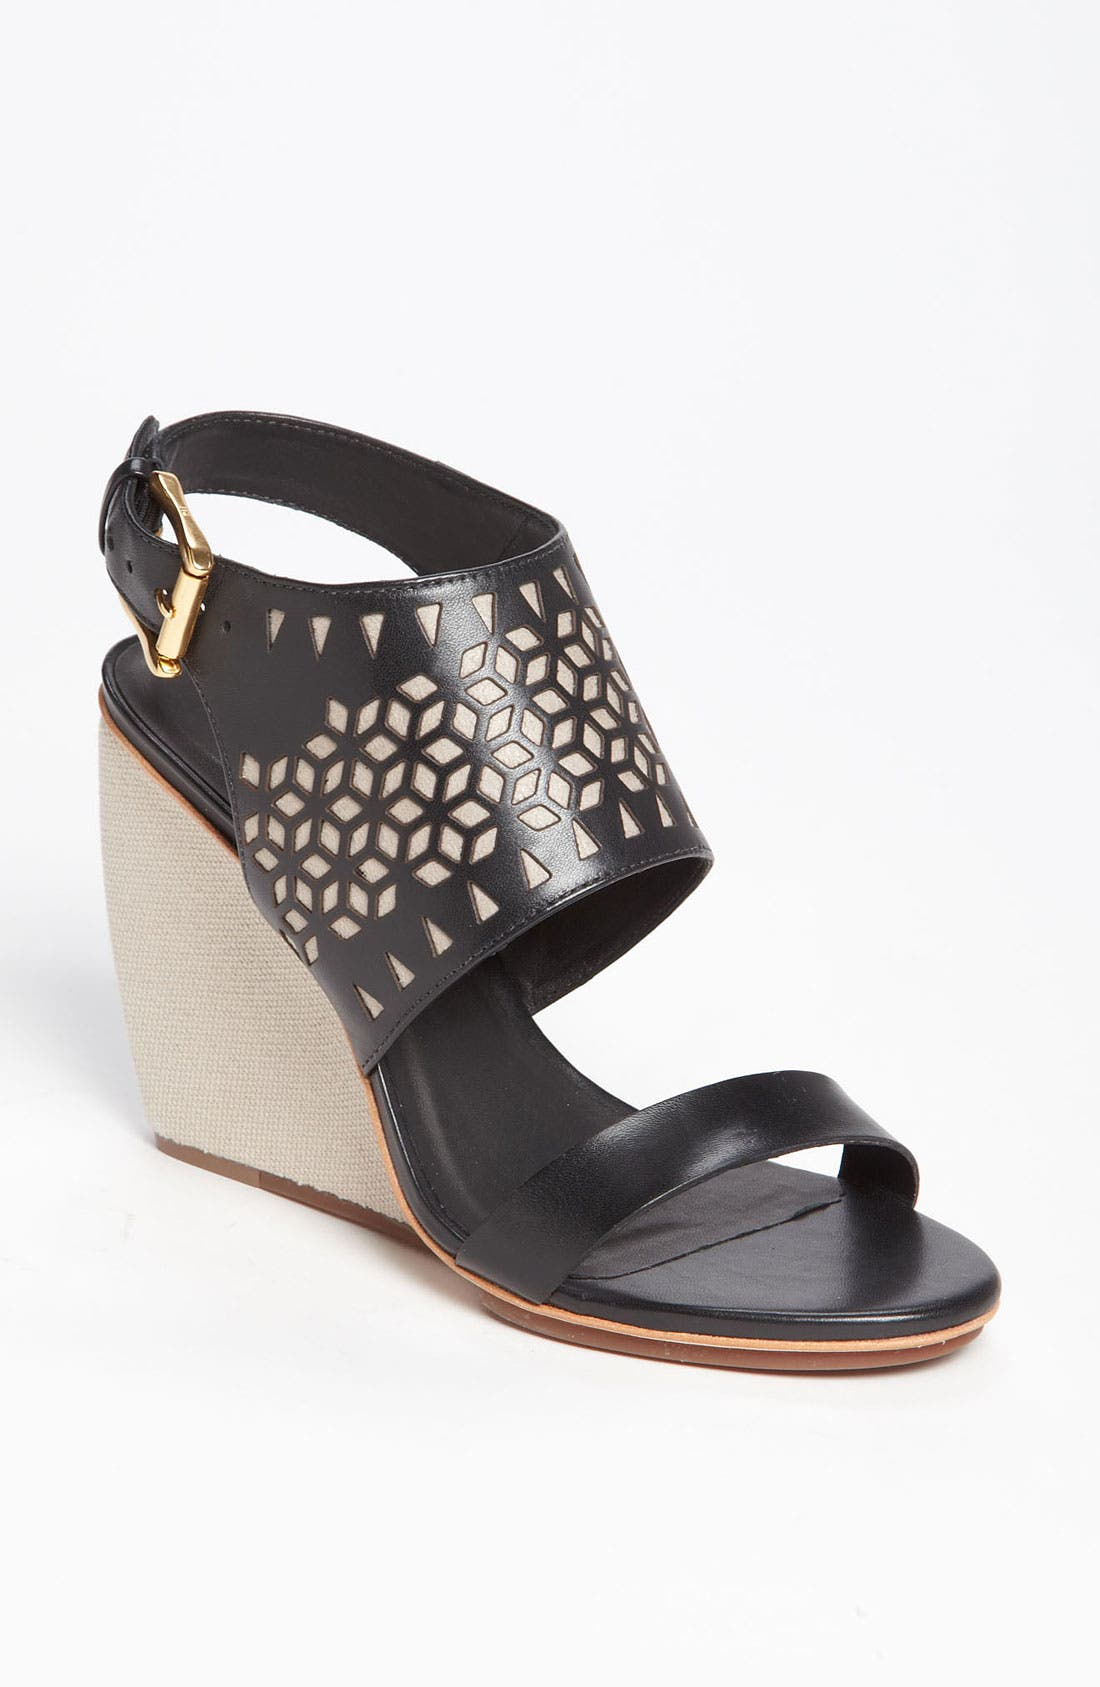 Alternate Image 1 Selected - Rebecca Minkoff 'Sally' Sandal